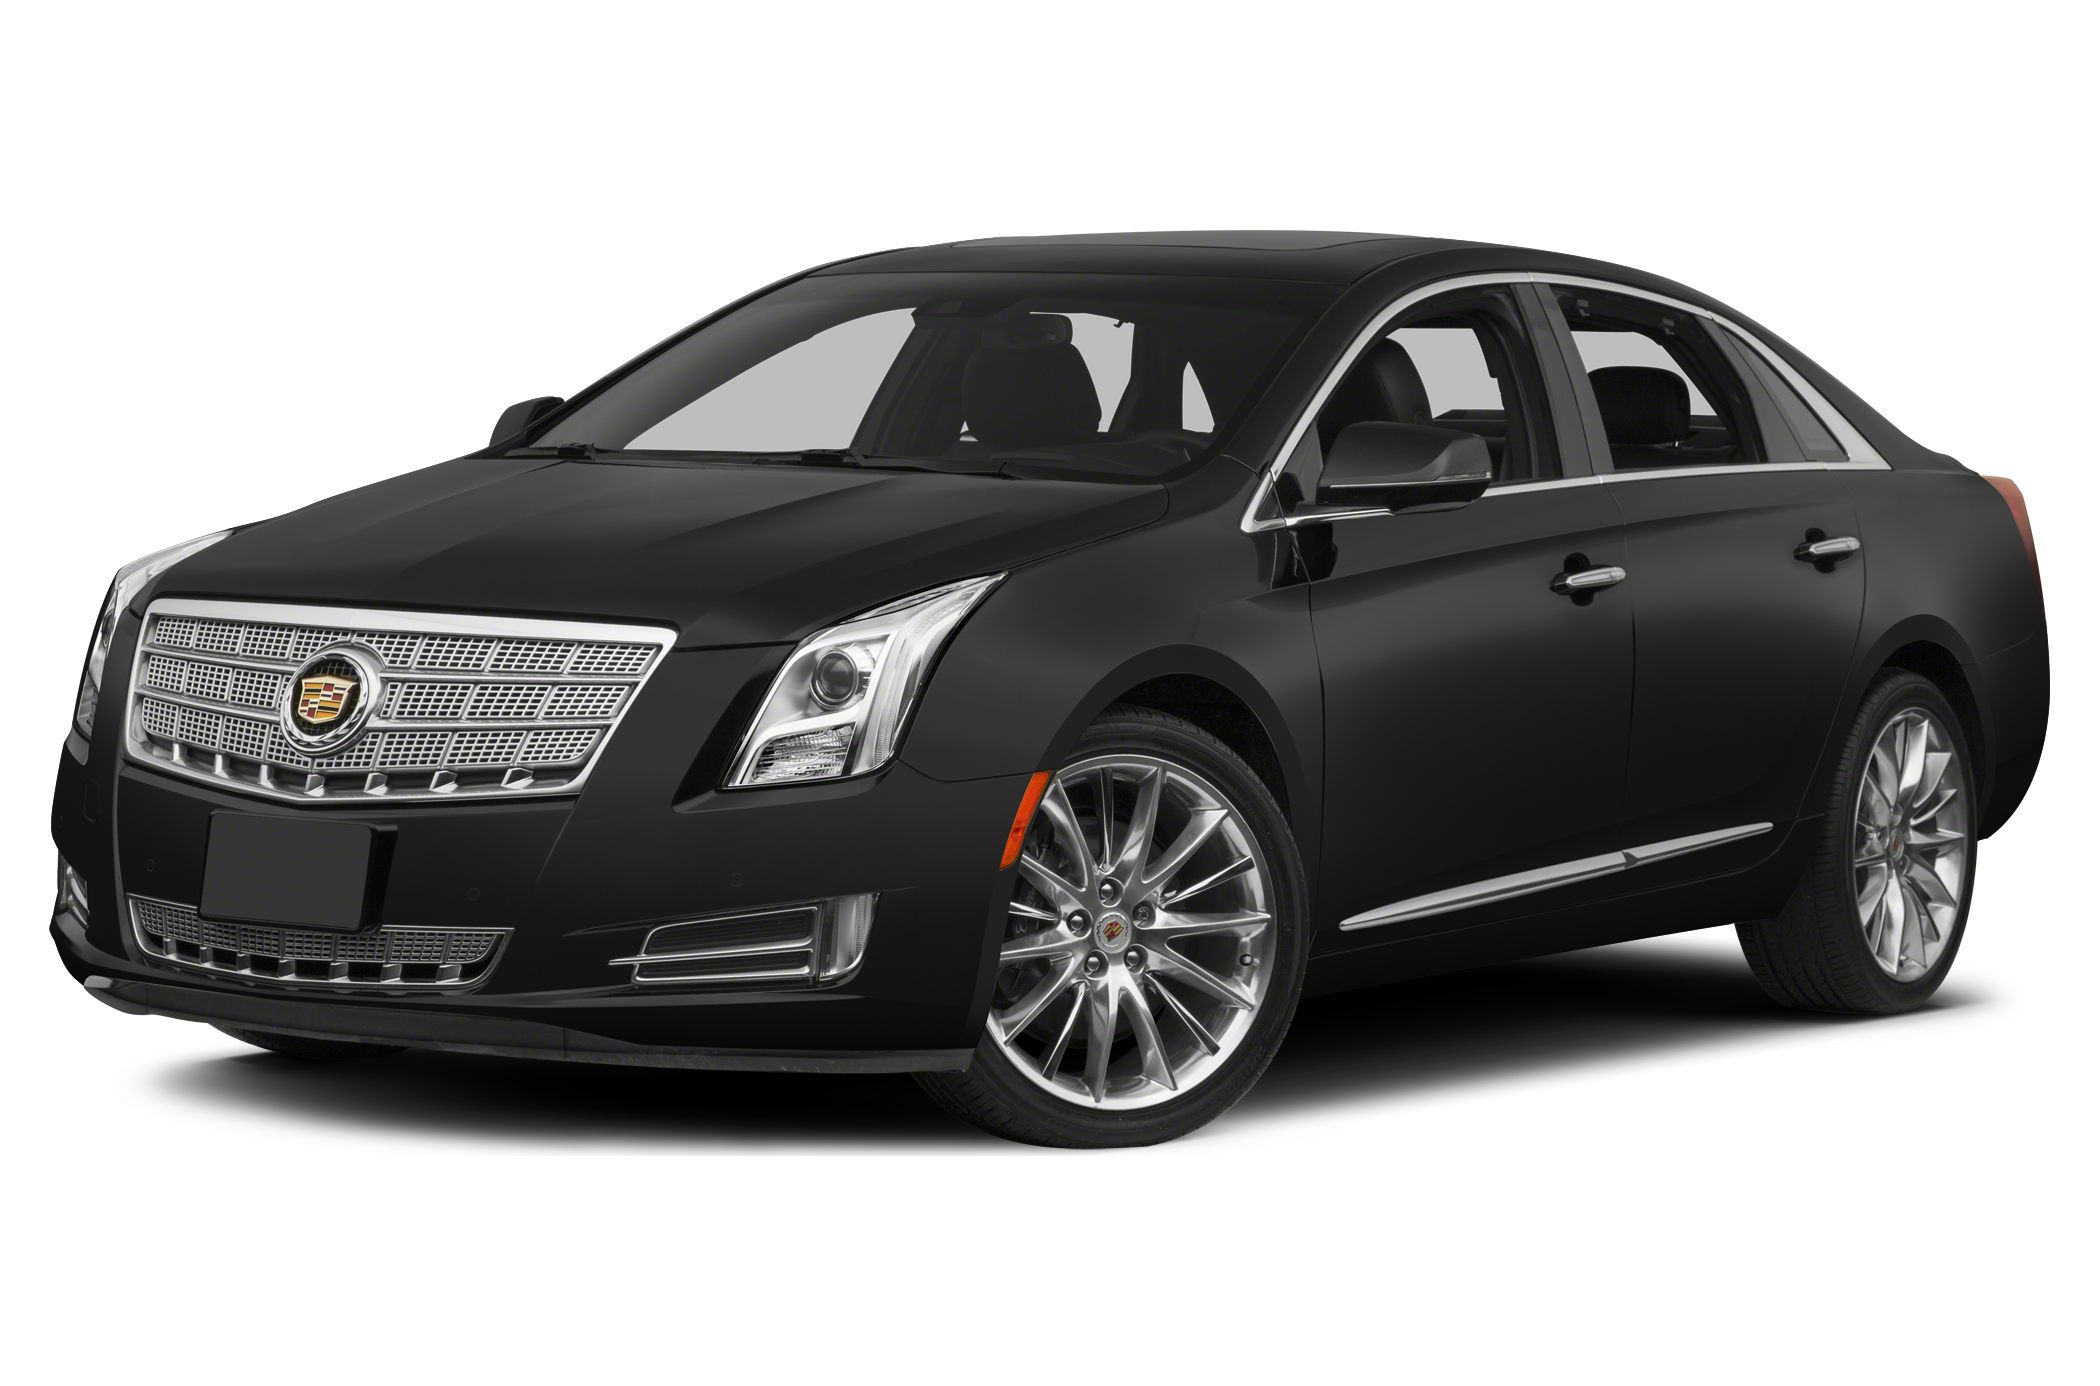 2015 Cadillac XTS Luxury Sedan for sale in Columbia for $53,525 with 0 miles